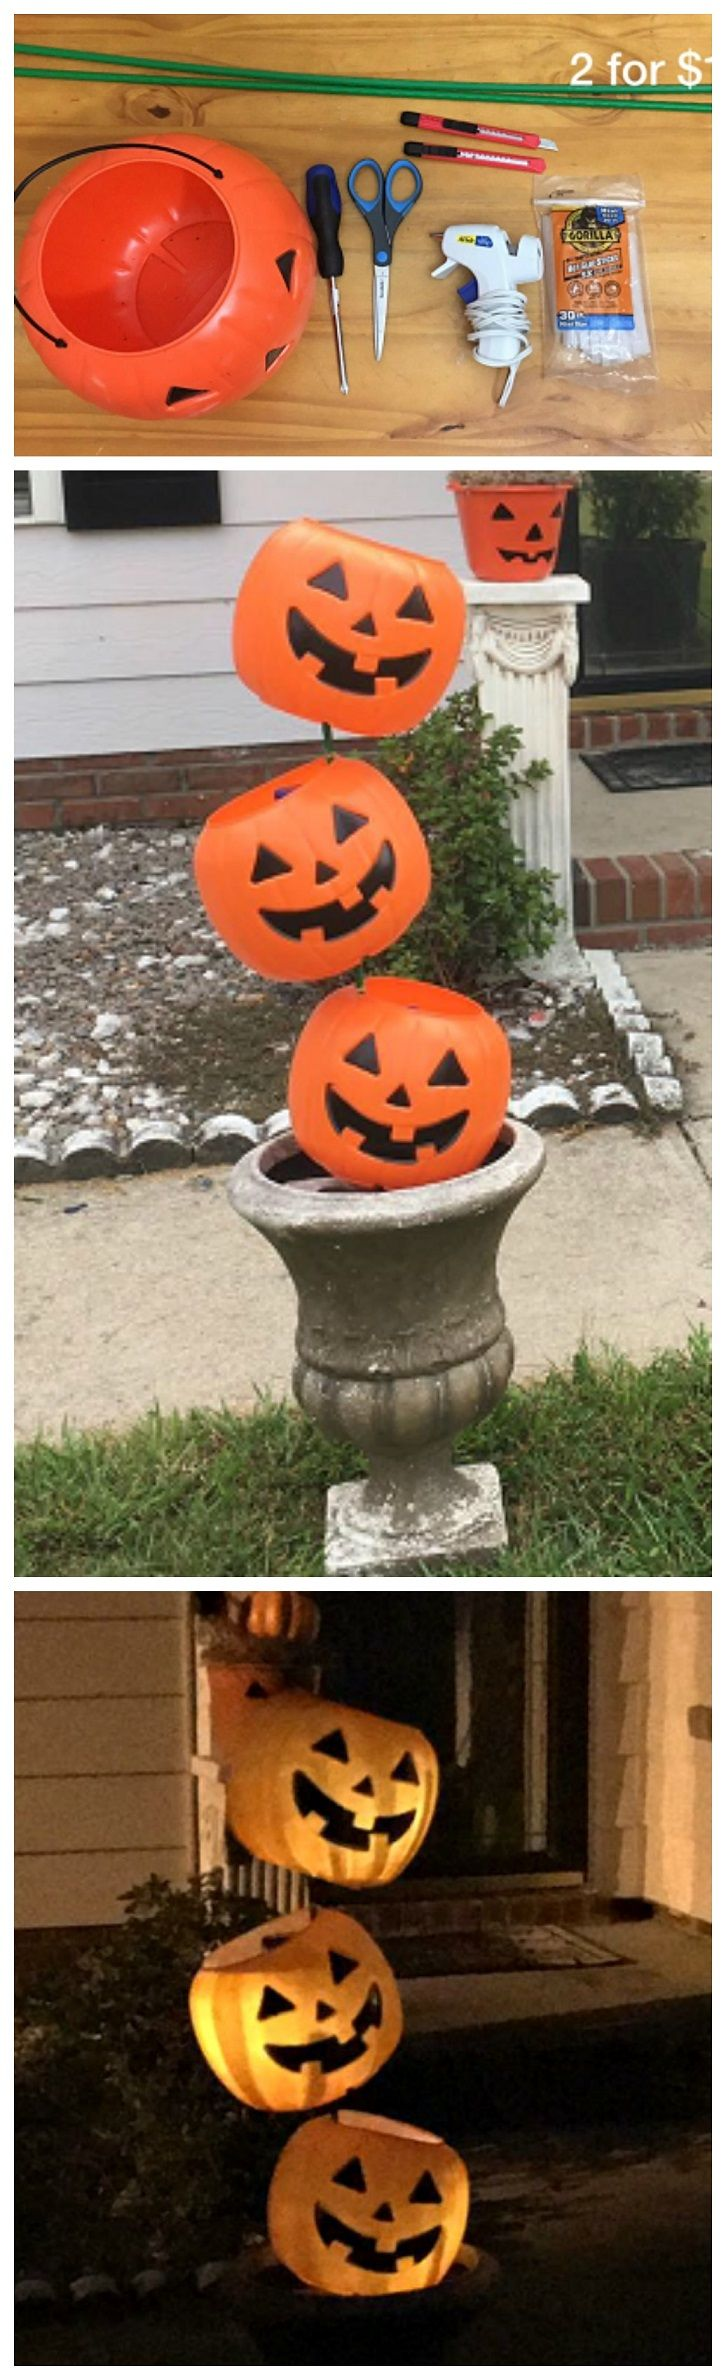 top ideas about homemade halloween decorations top 25 ideas about homemade halloween decorations halloween party ideas diy halloween decorations and halloween diy